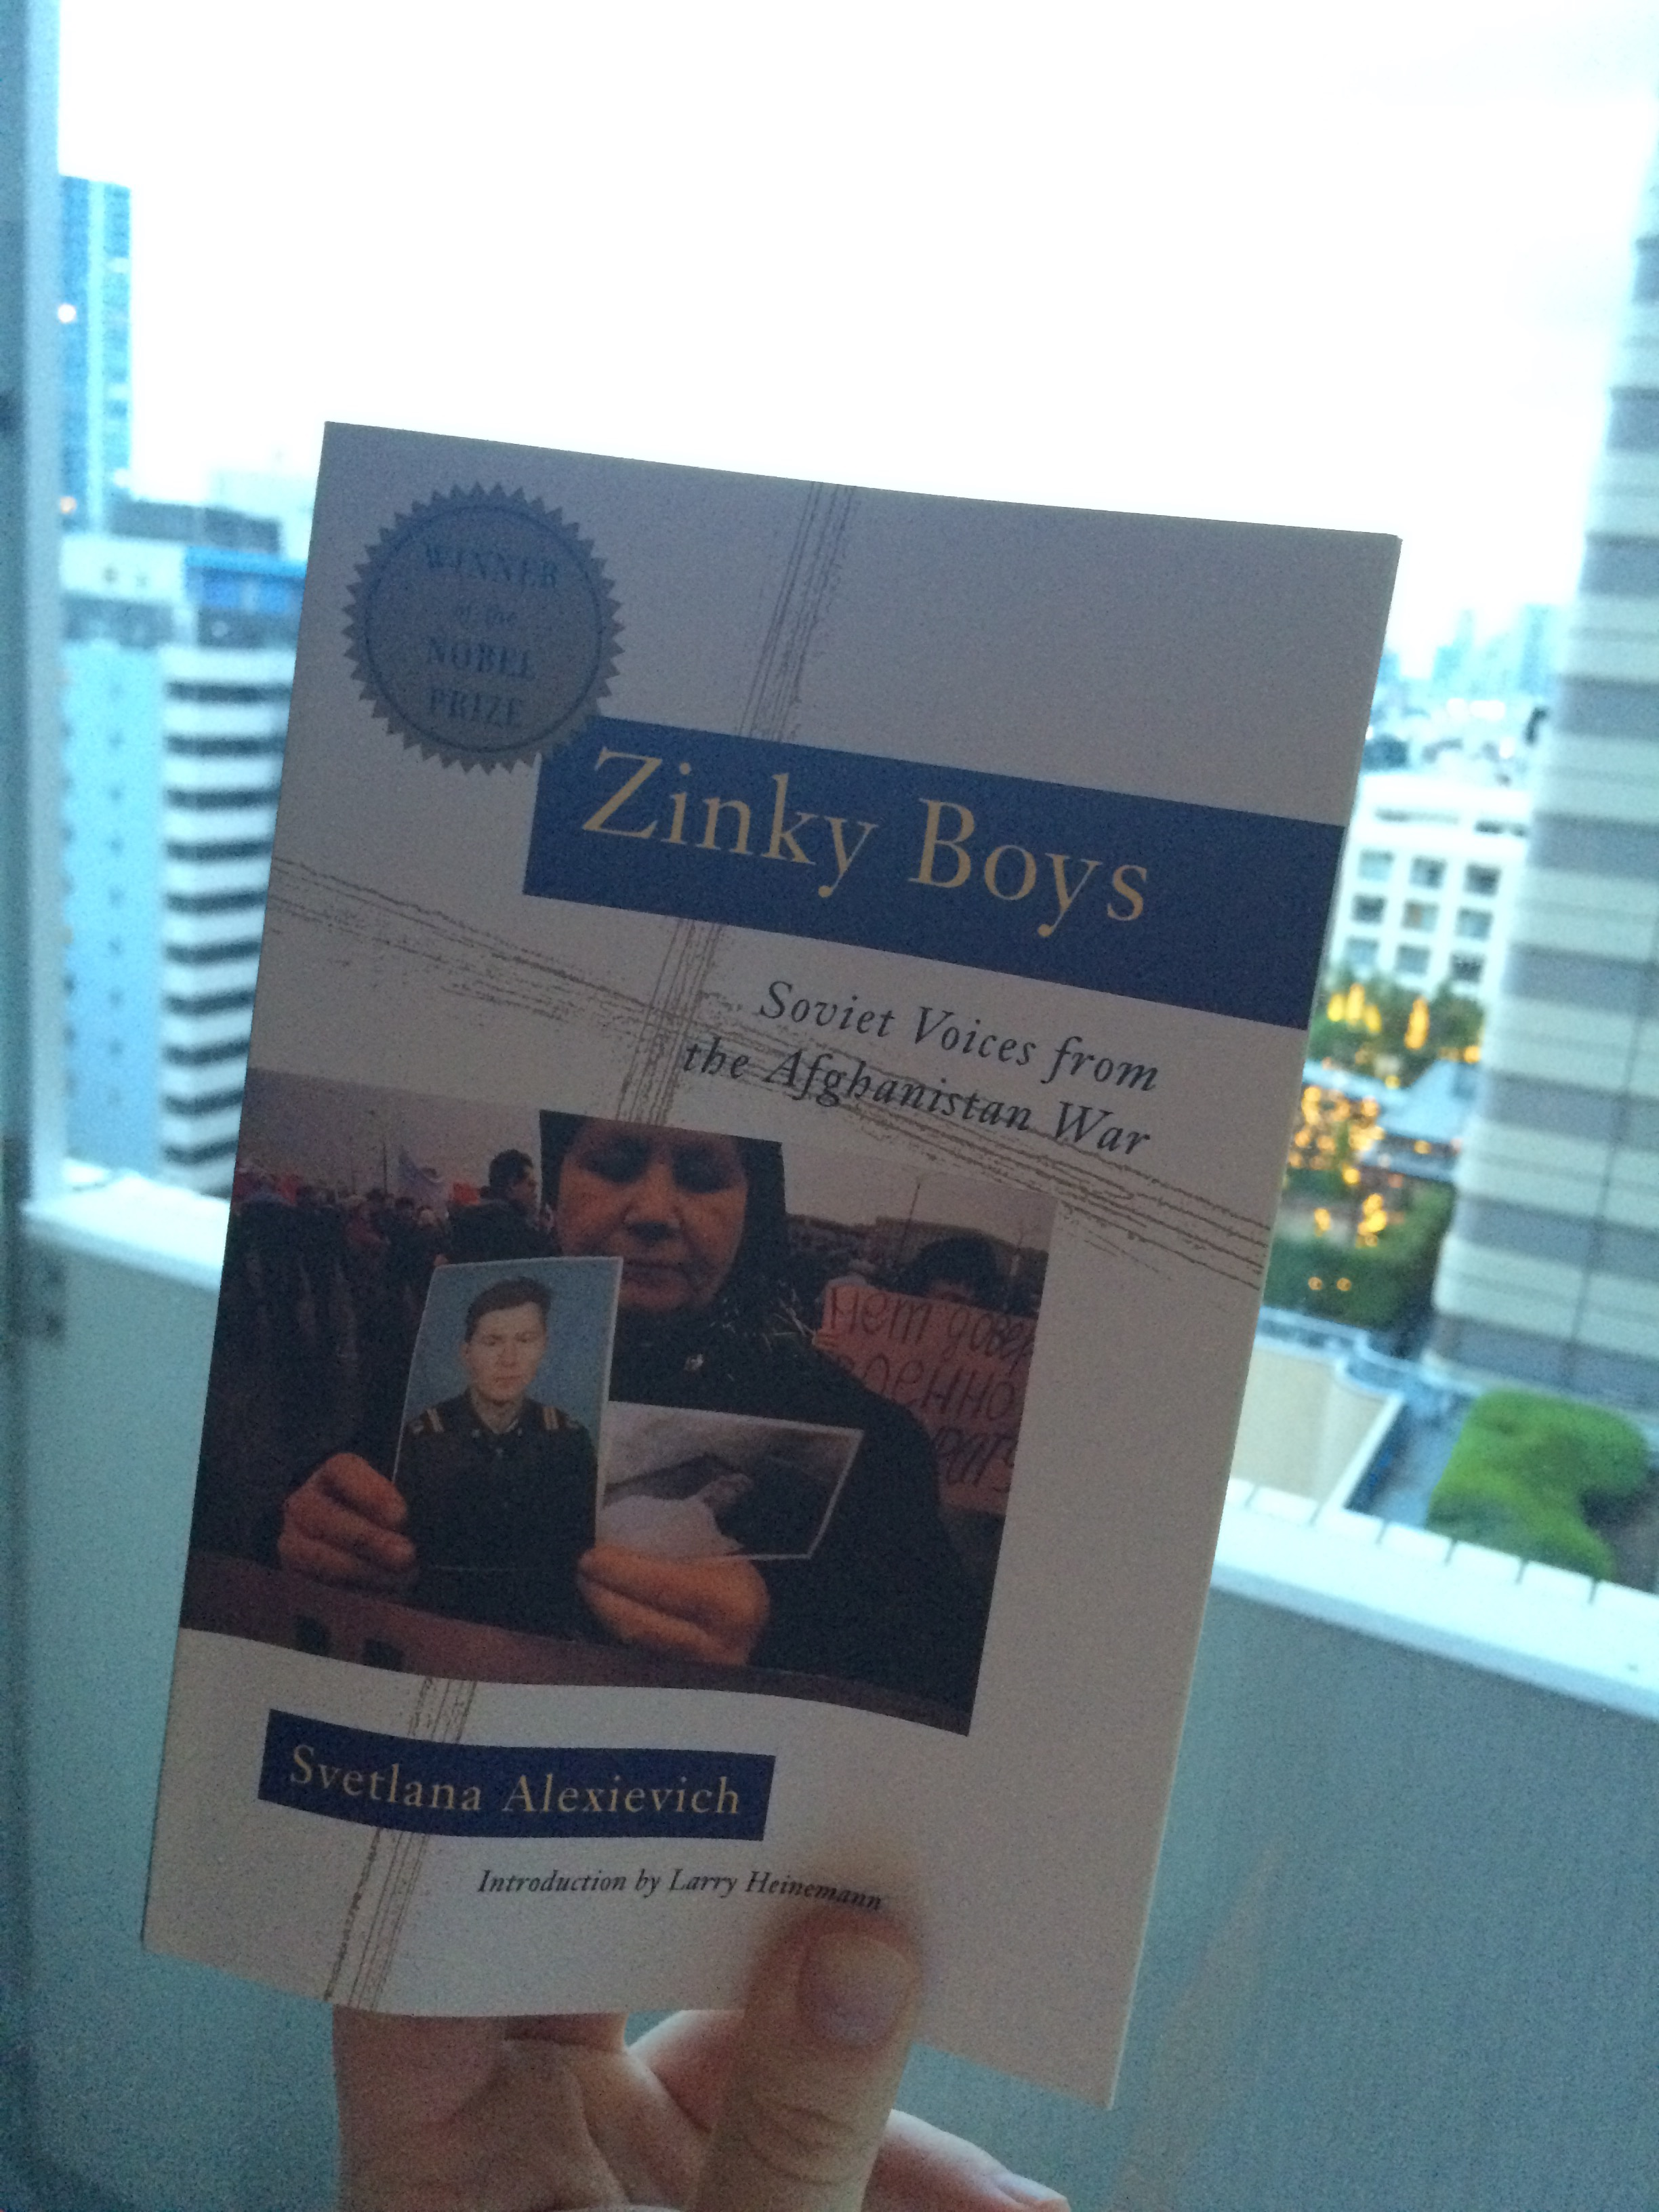 zinky boys by svetlana alexievich essay Zinky boys by svetlana alexievich, 9780393336863, available at book depository with free delivery worldwide.